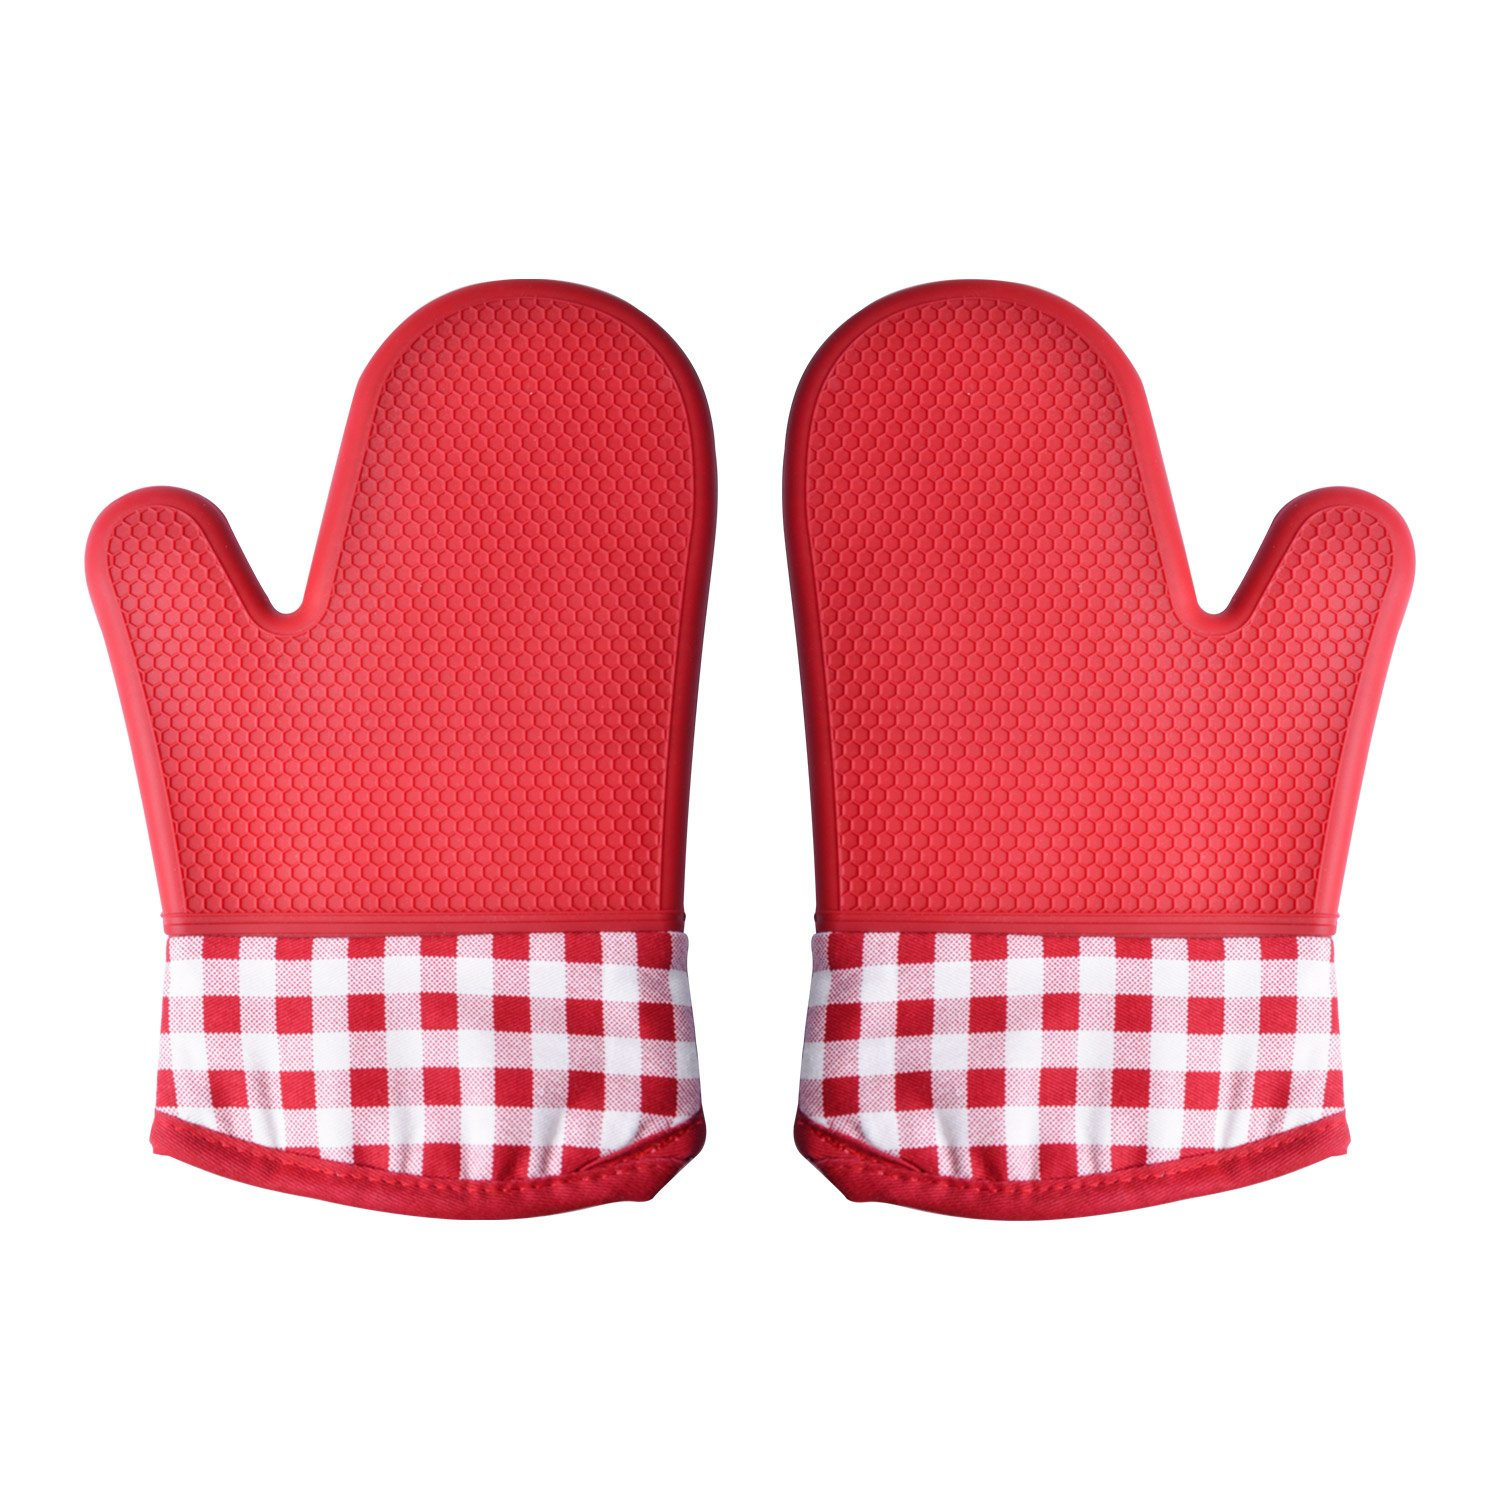 SAVORLIVING Professional Silicone Oven Mitt, Oven Gloves with Quilted Cotton Liner Protective Cuff, Ideal for Holiday Baking Cooking, 1 Pair (Green, Cotton)